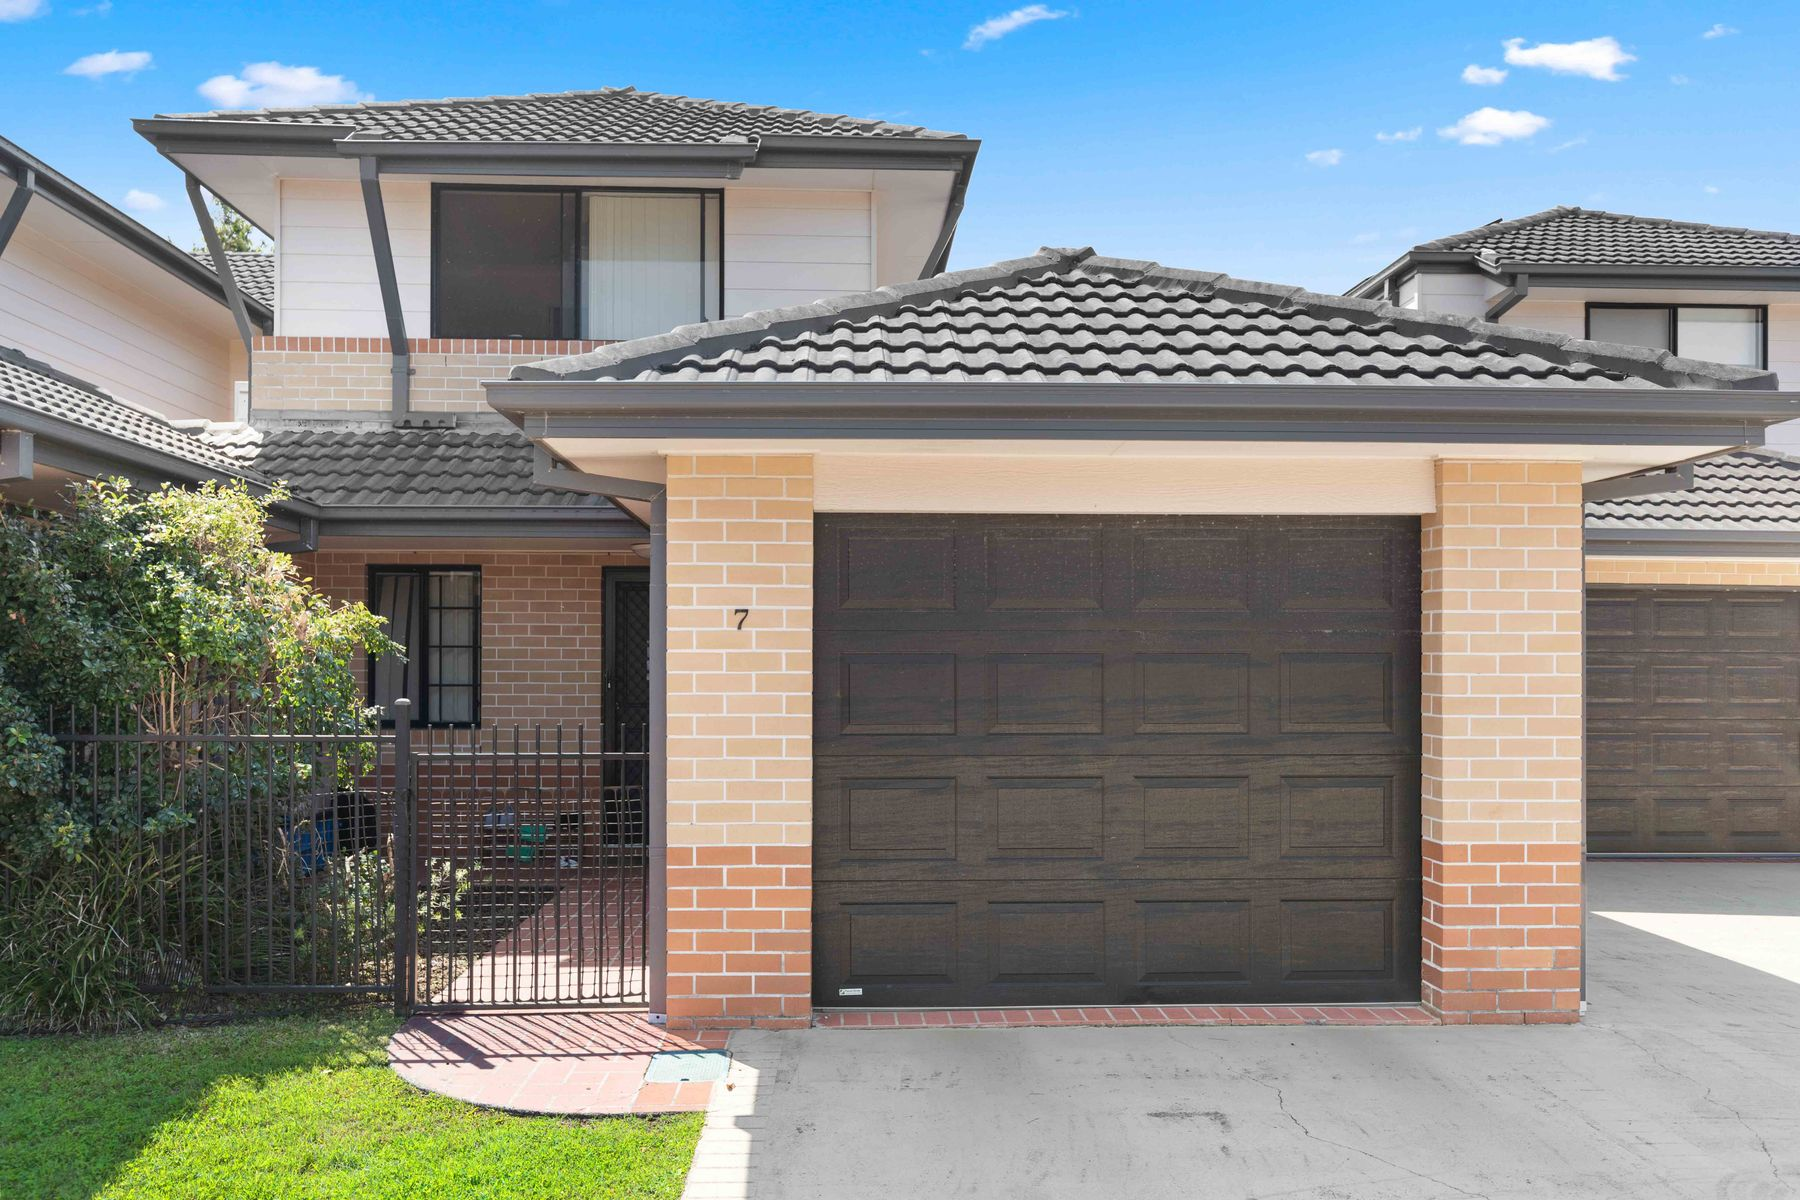 7/2 Springhill Drive, Sippy Downs, QLD 4556